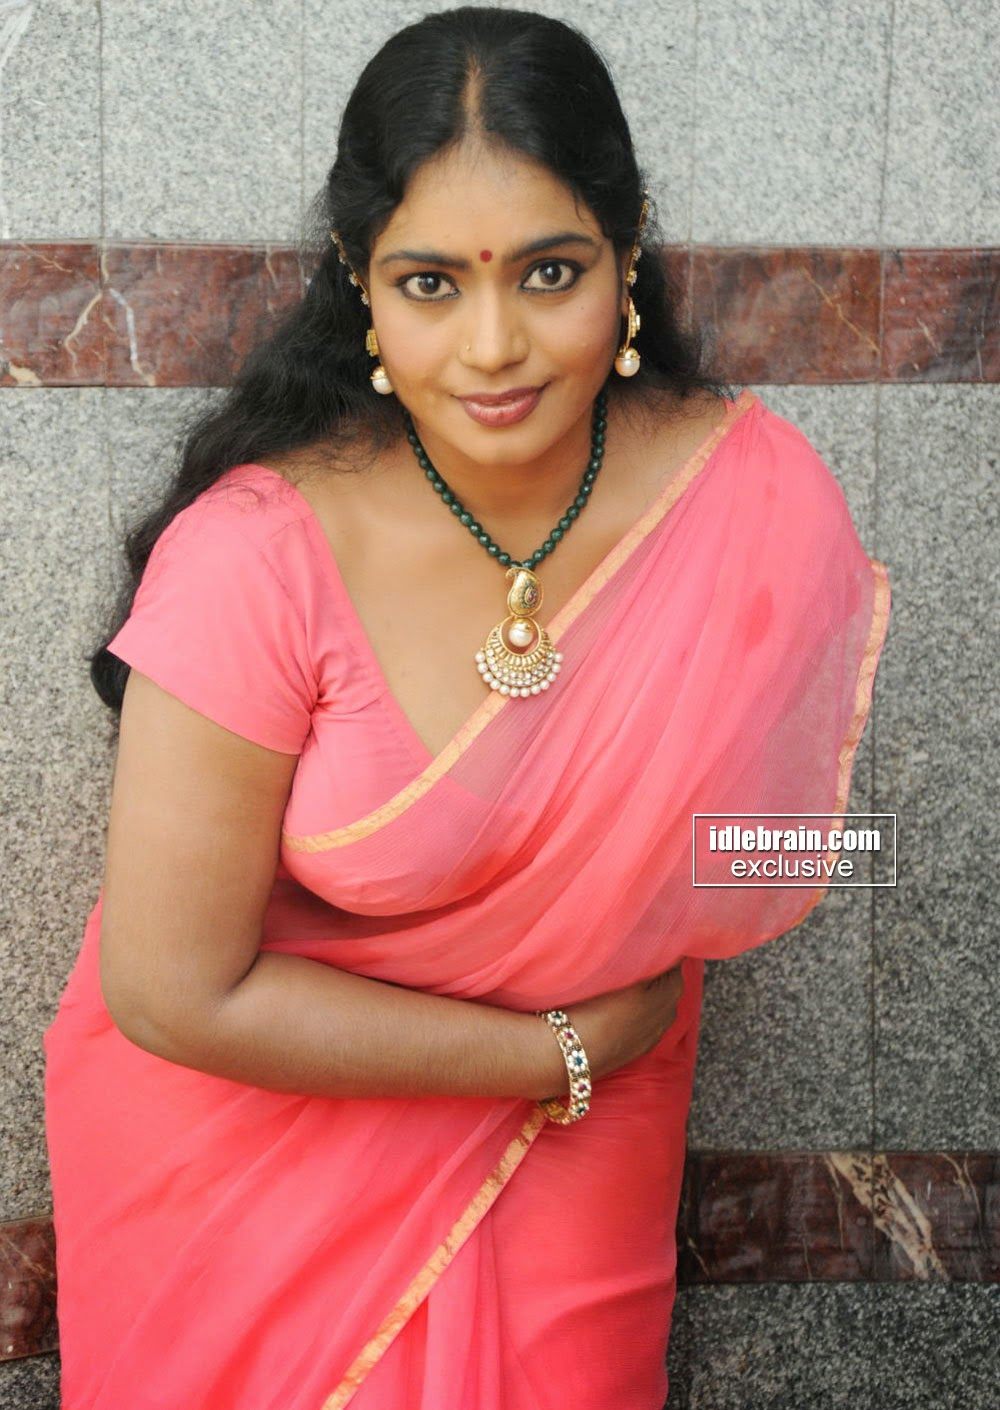 Indian Garam Masala Jayavani Hot Photos Gallery In Pink -9375